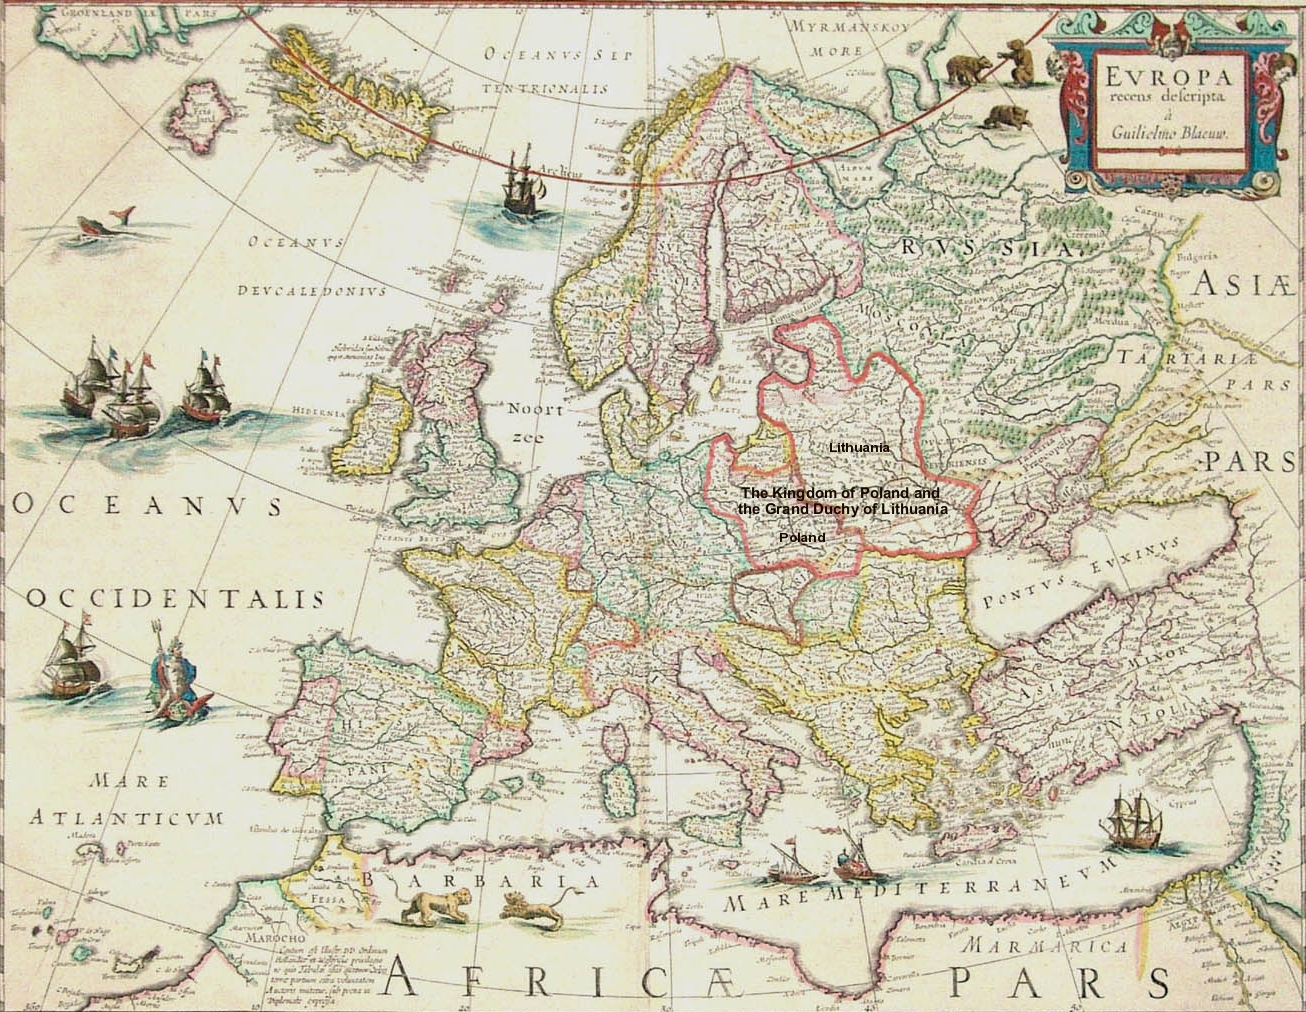 map showing kingdom of poland and grand duchy of lithuania 1561 1629 under whose rule kovel had been since the 14th century